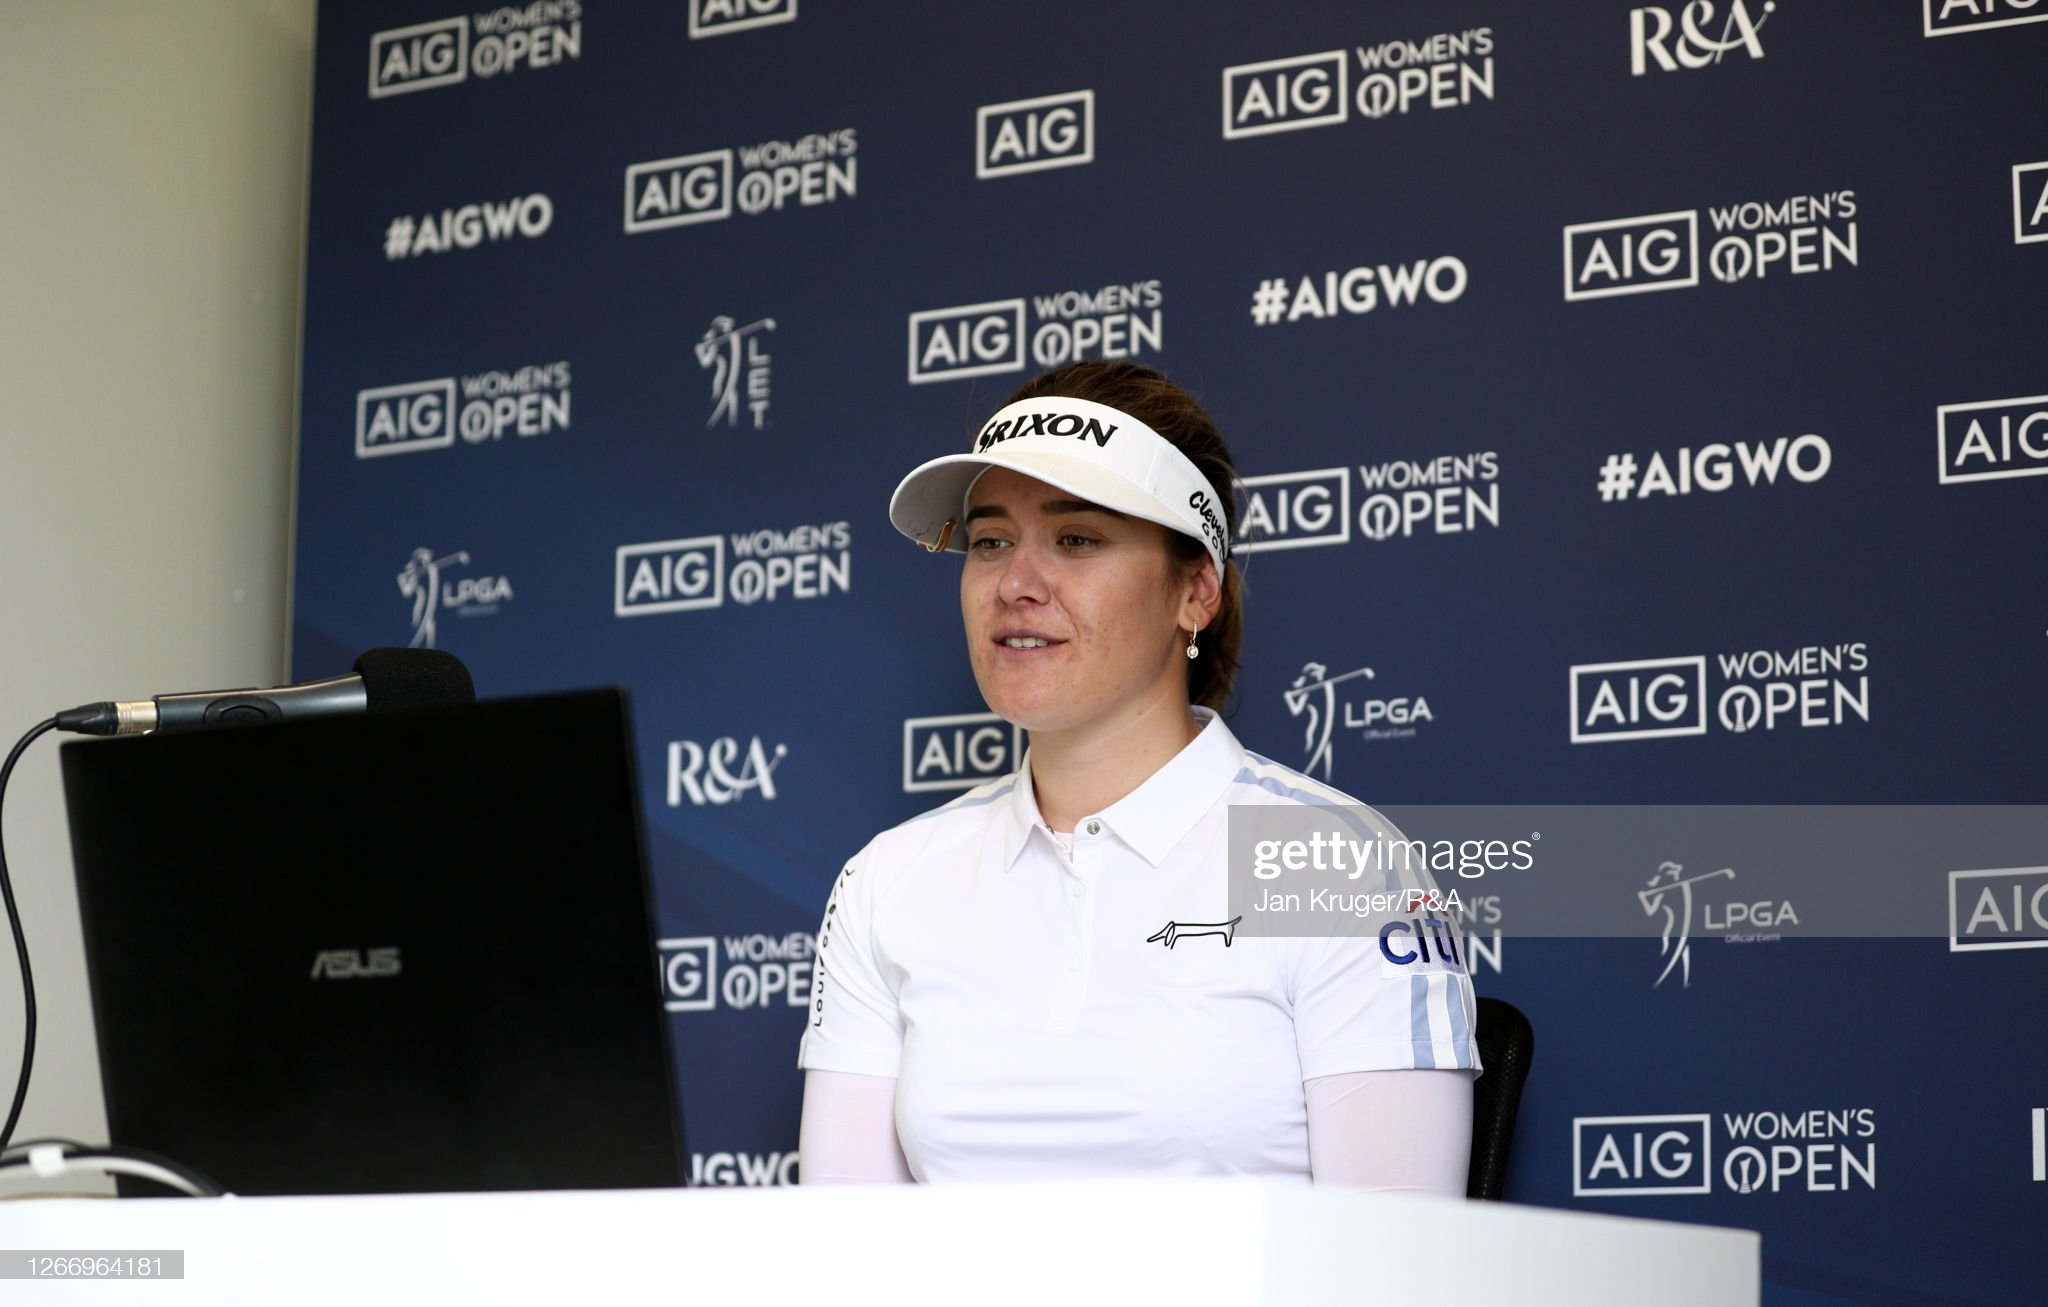 https://media.gettyimages.com/photos/hannahgreen-of-australia-speaks-to-the-media-during-a-virtual-press-picture-id1266964181?s=2048x2048